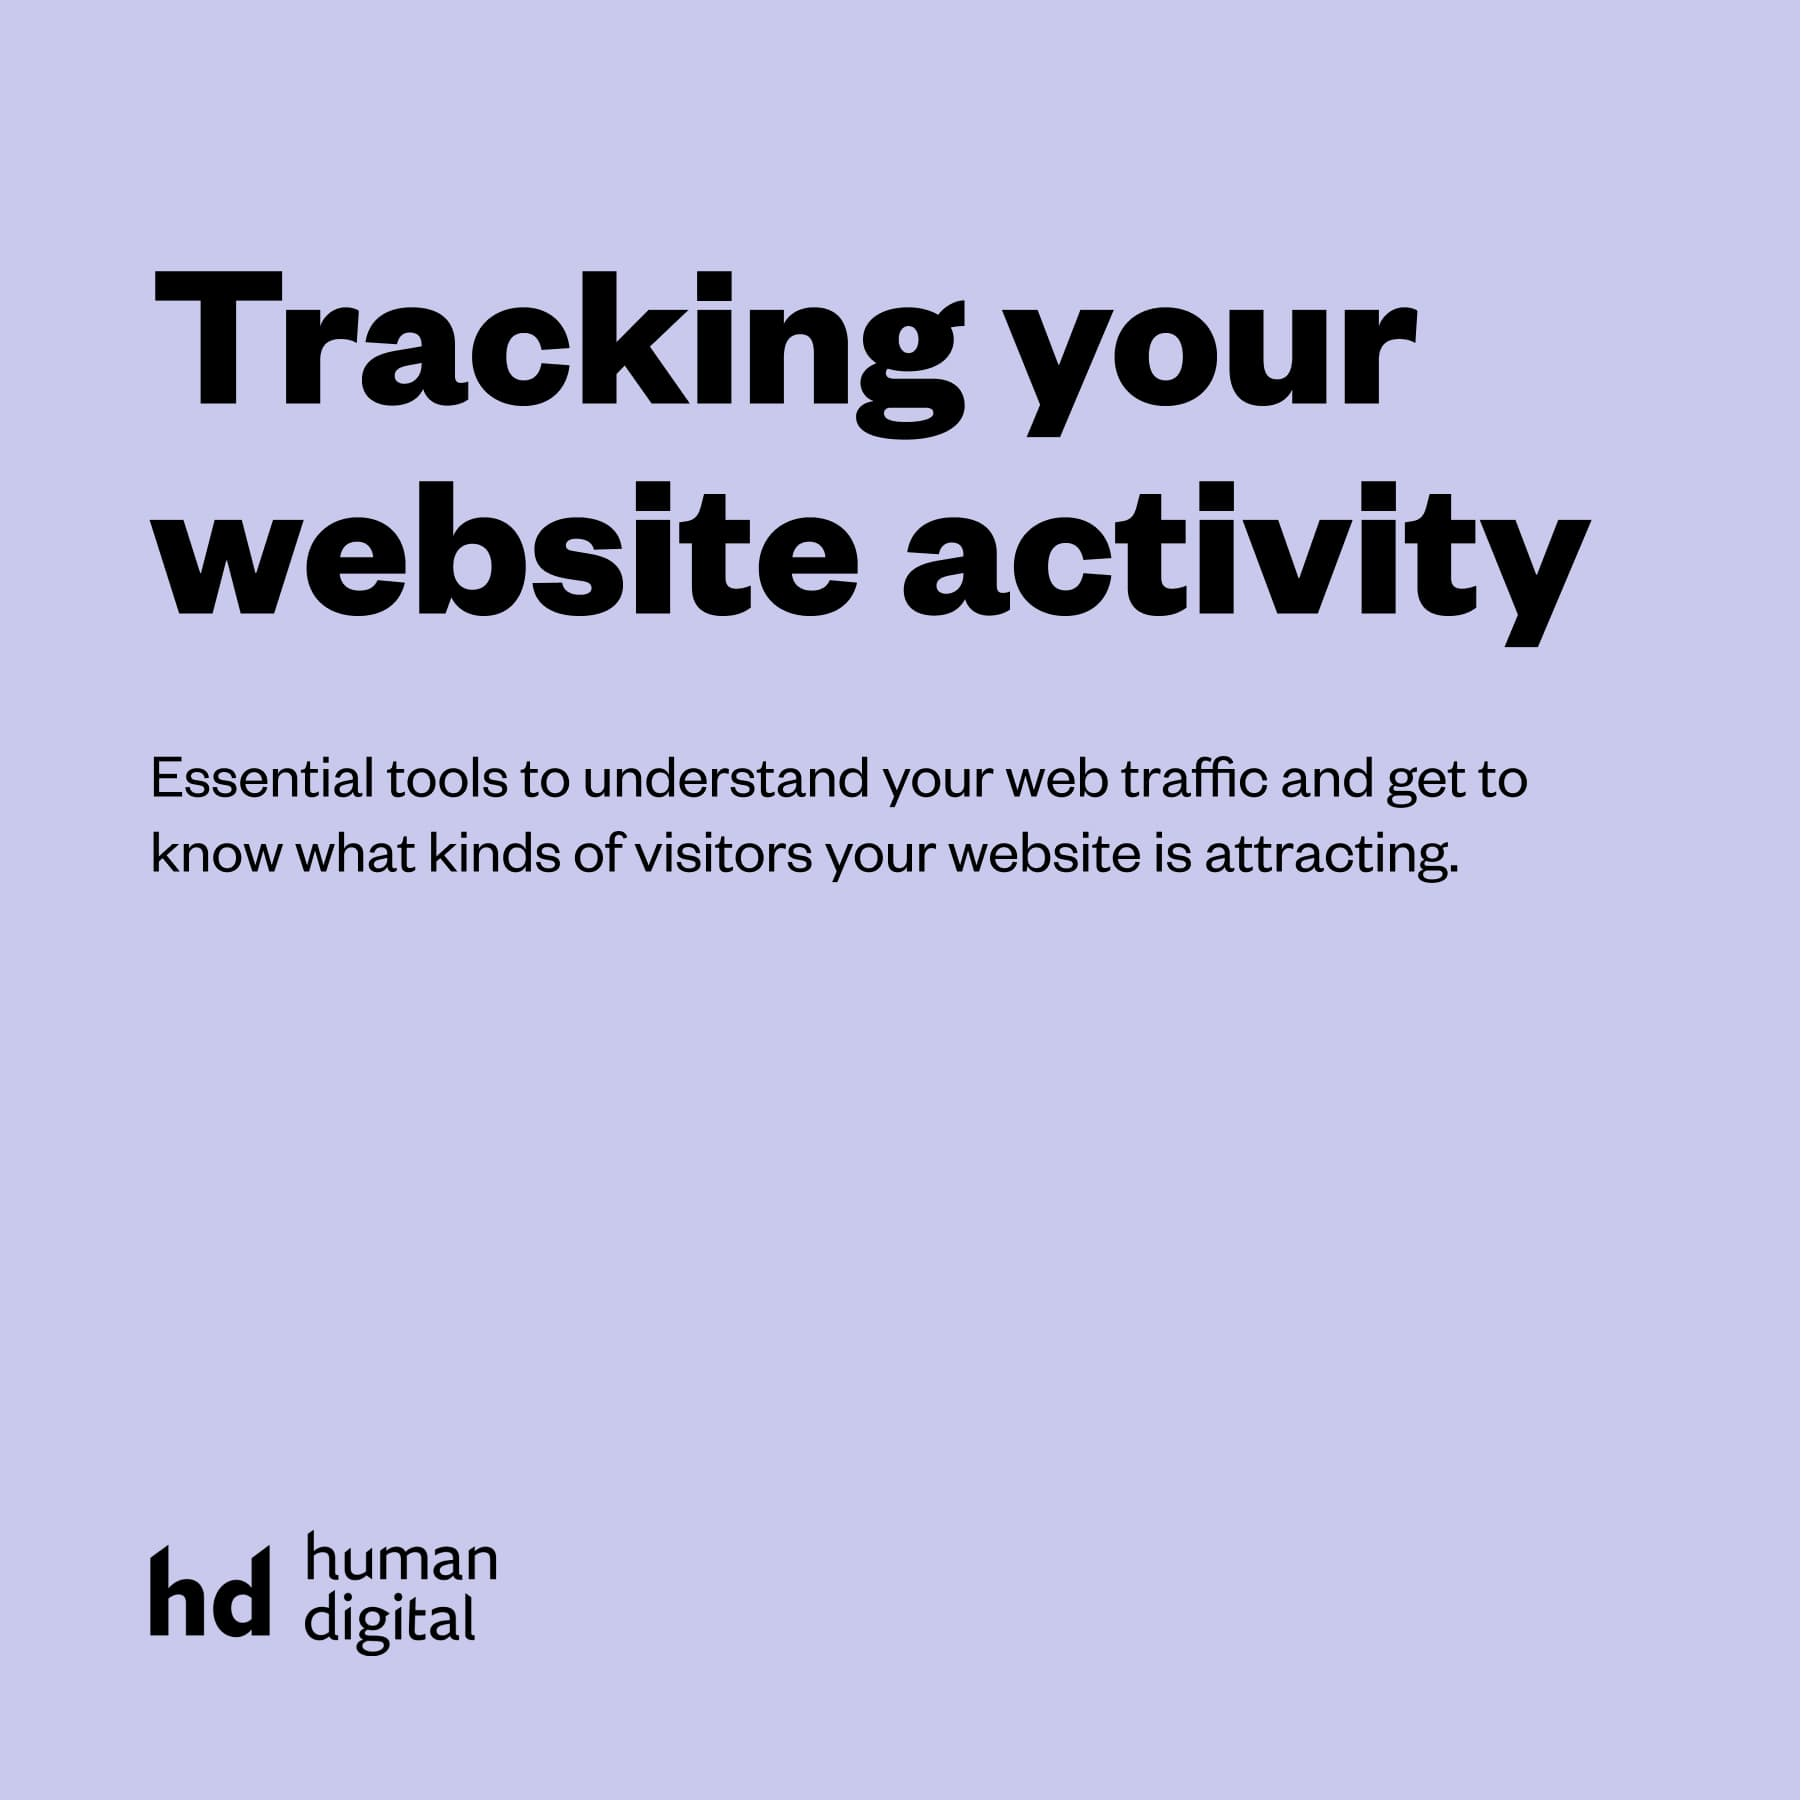 Tracking your website activity